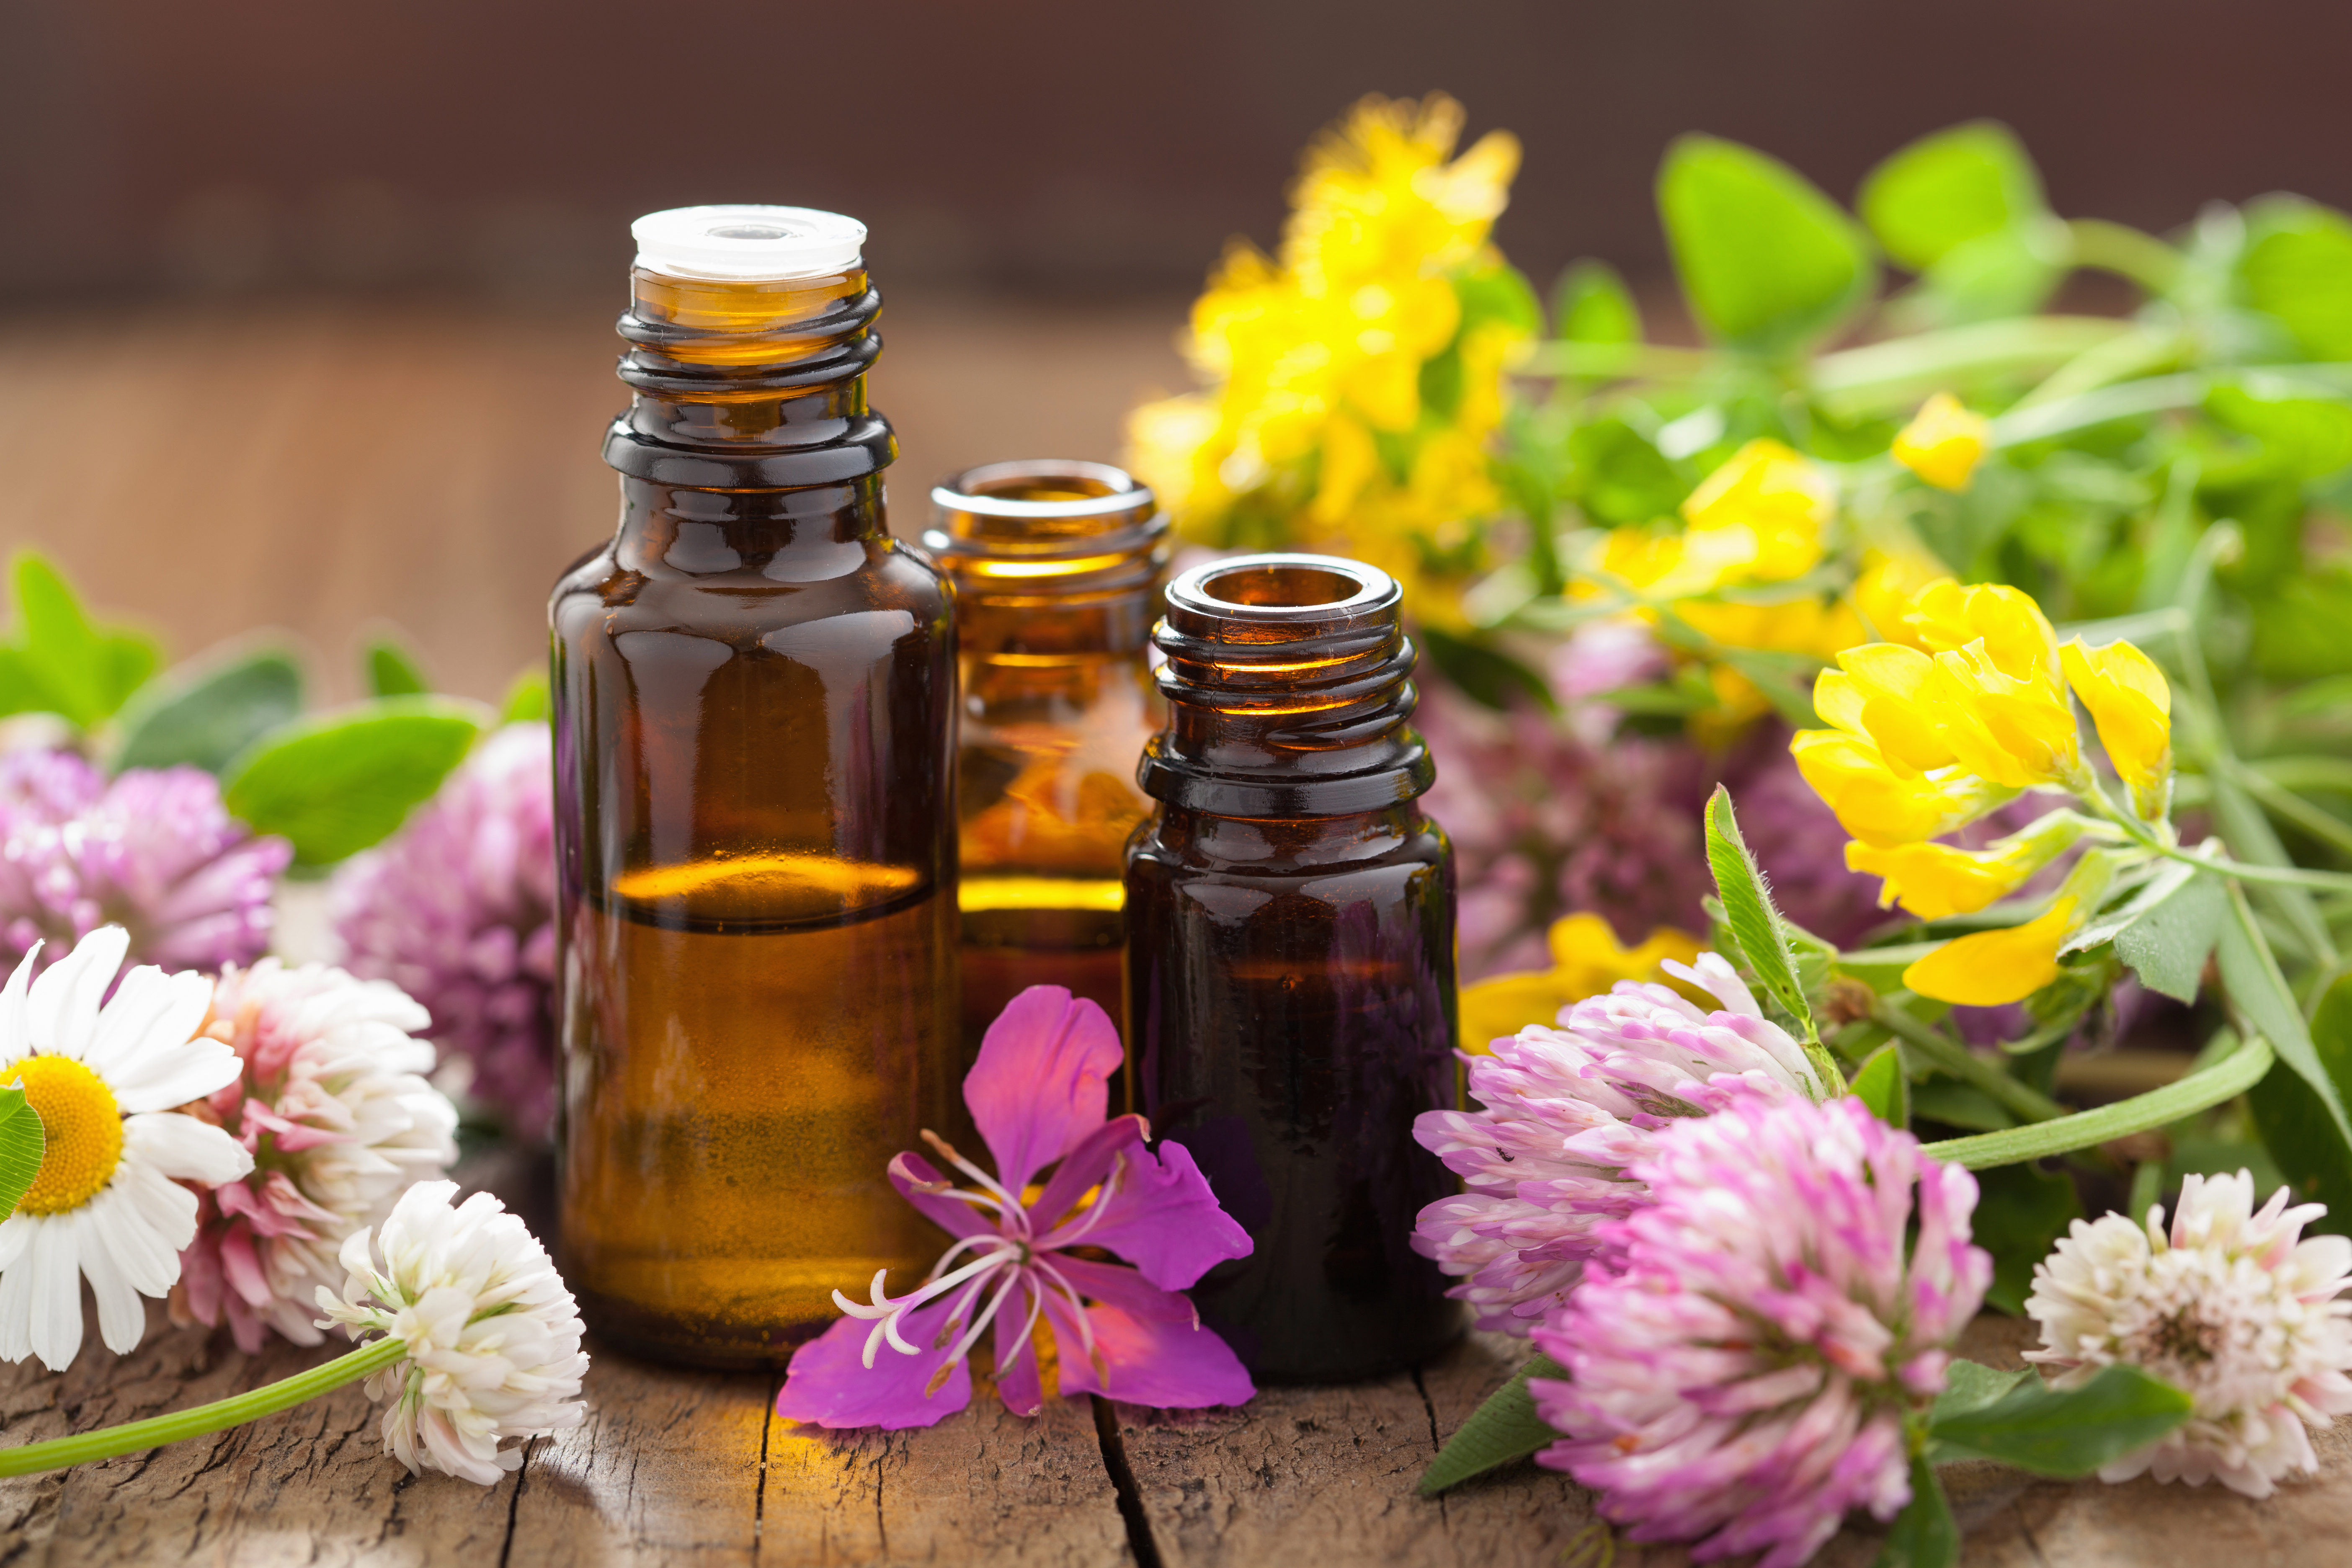 10-Best-Essential-Oils-to-Beat-Stress-and-Anxiety.jpg (5616×3744)